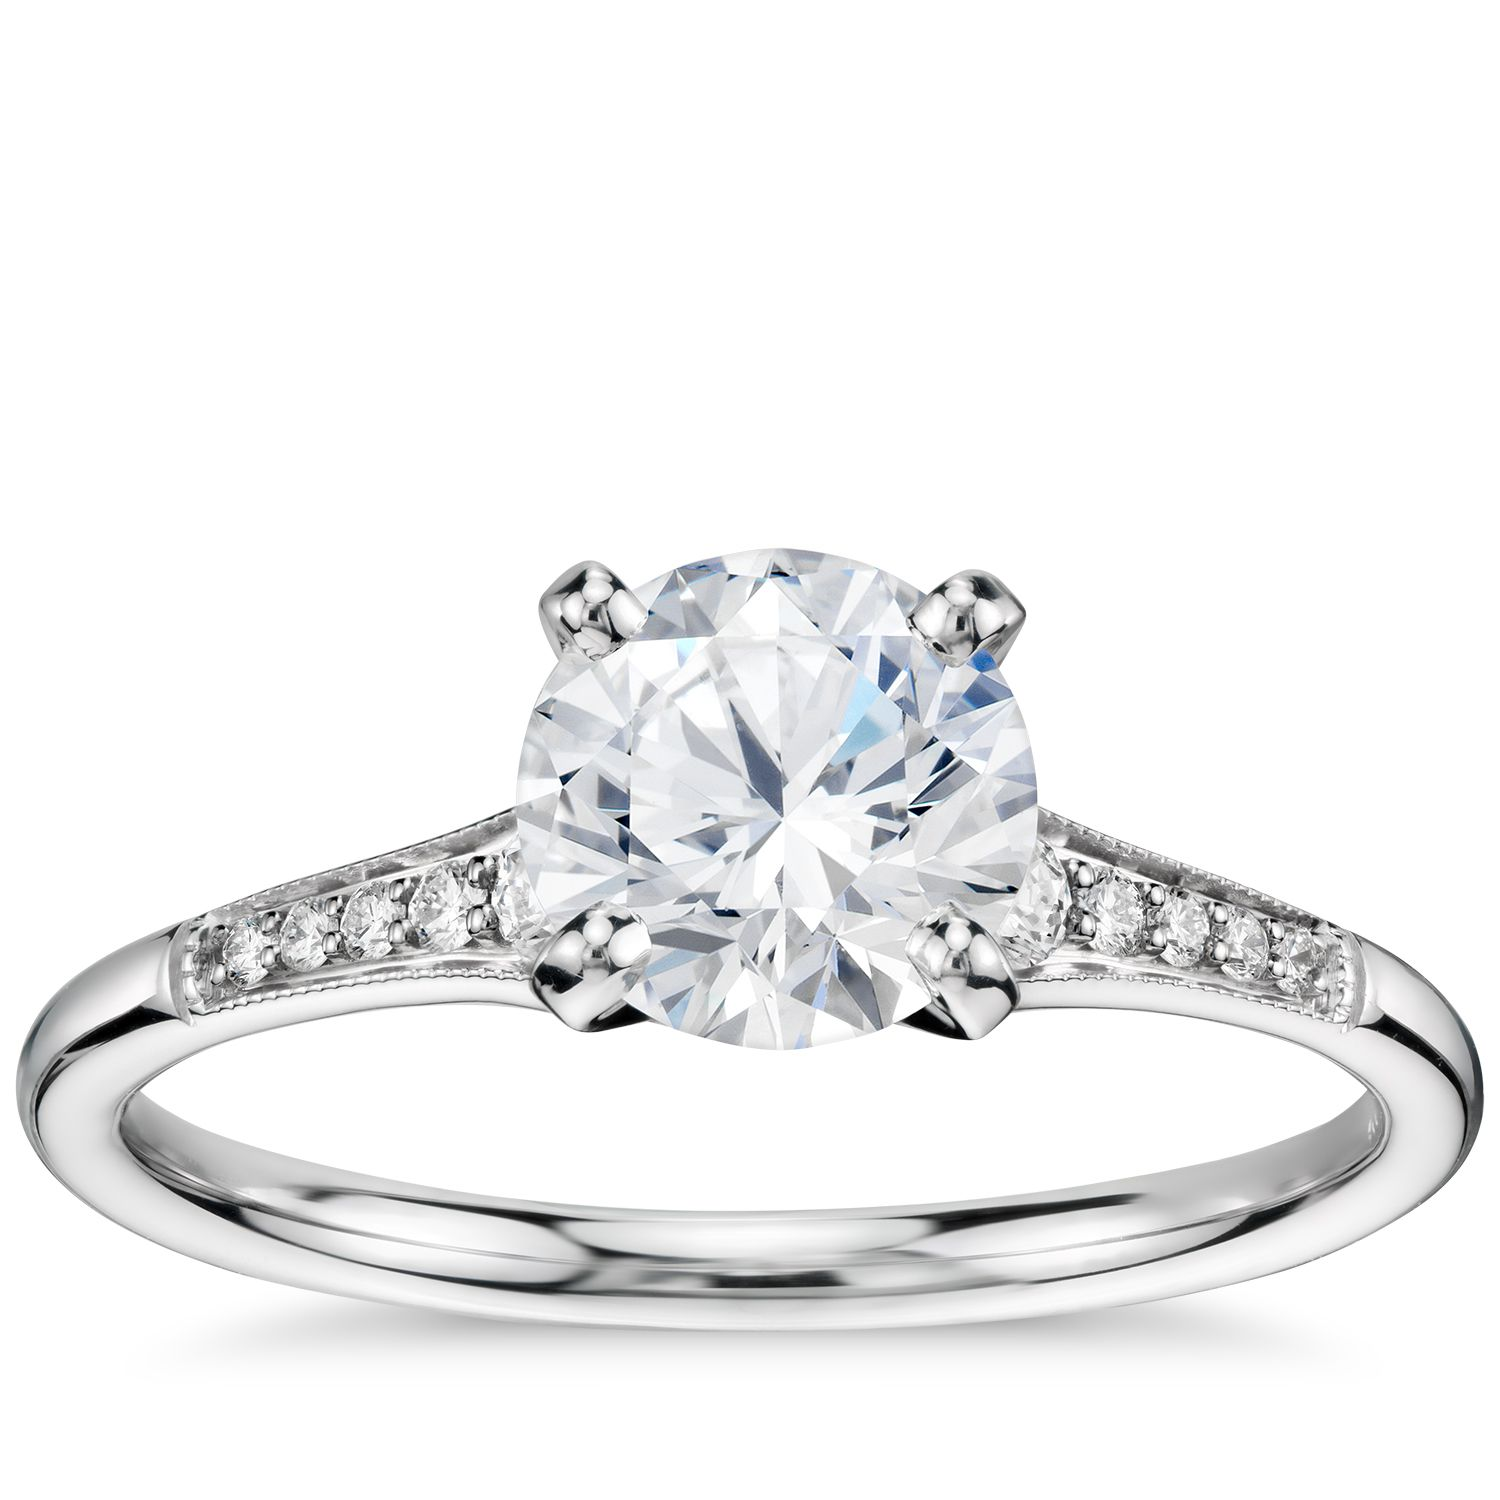 jp best bazaar news gloria engagement the perfect ring of rings brides uk